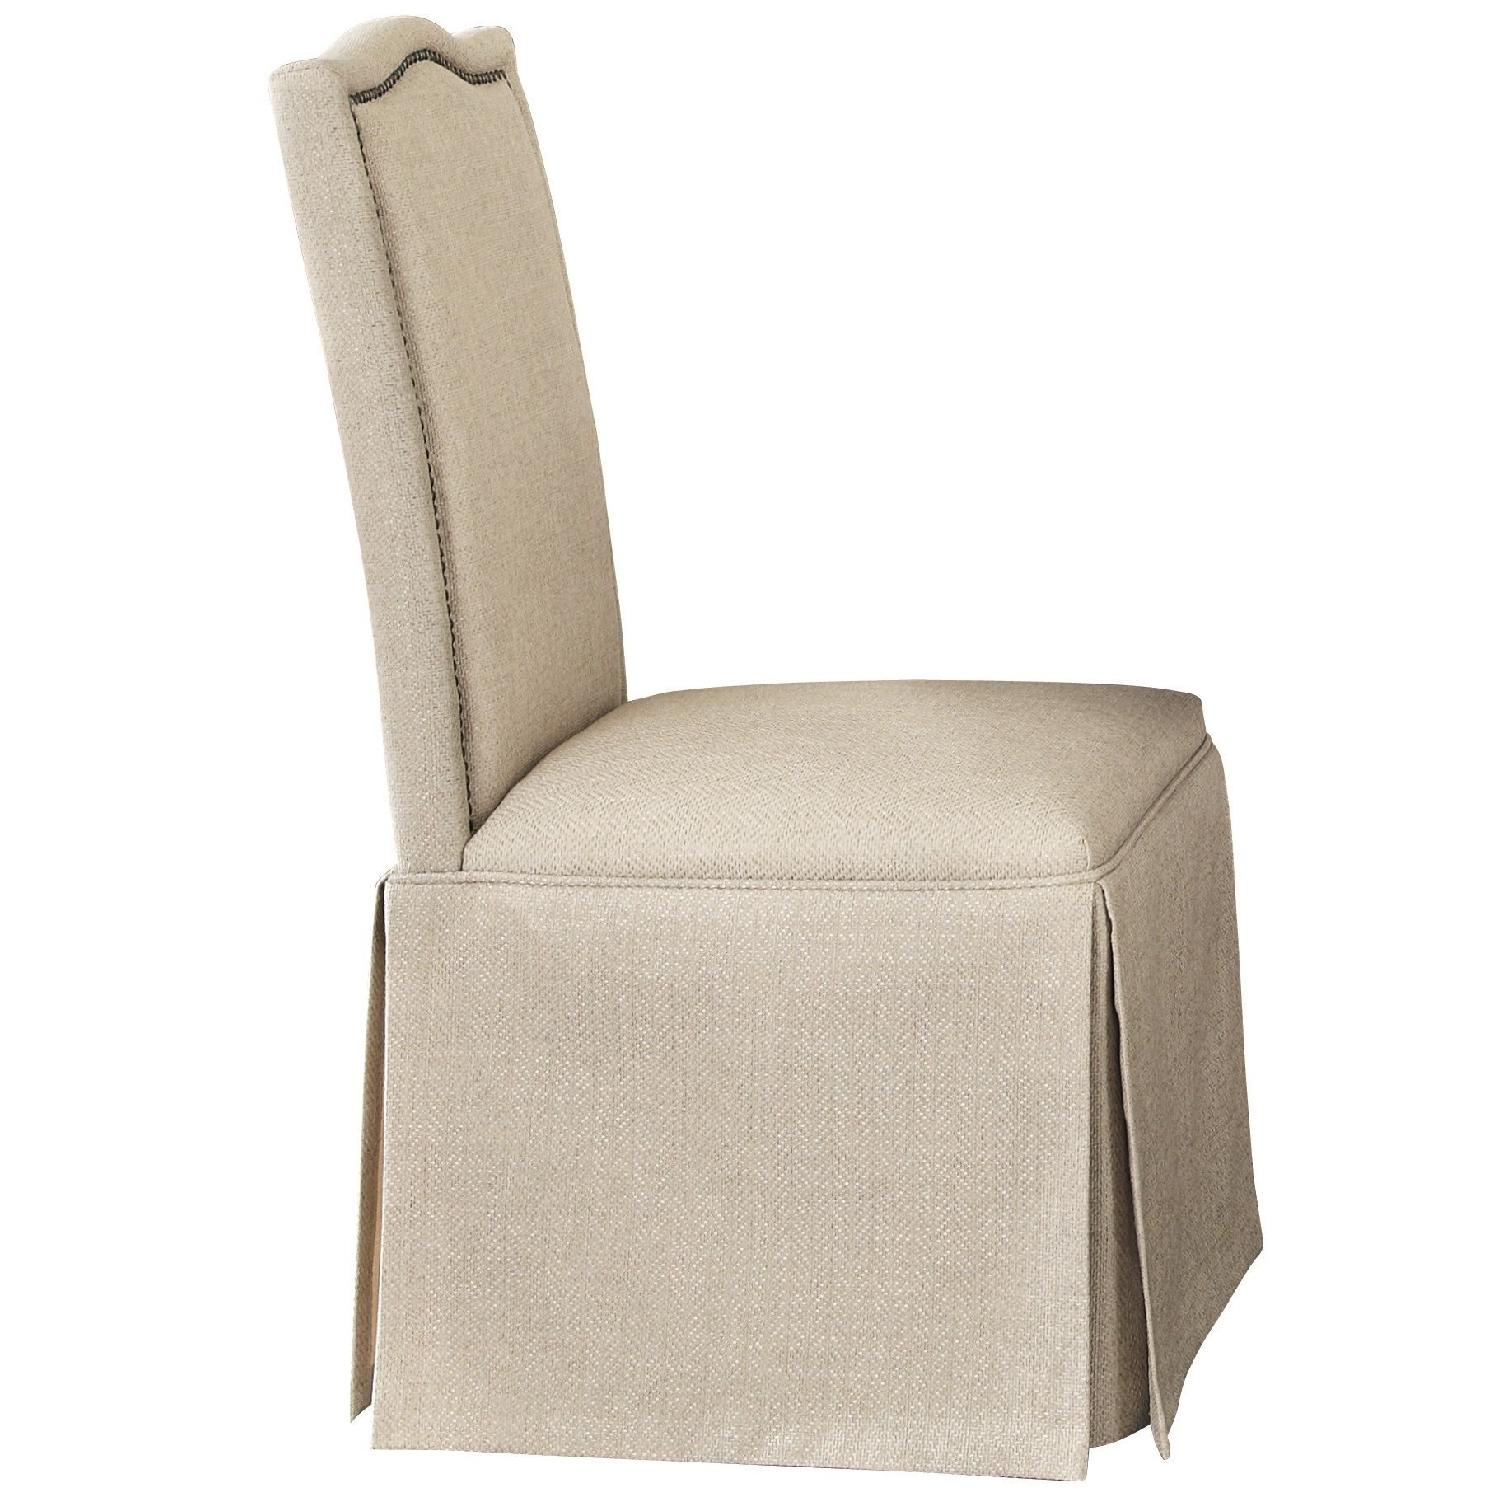 Parson Chair w/ Simple Curved Crests High Back & Fabric Upholstery & Skirt